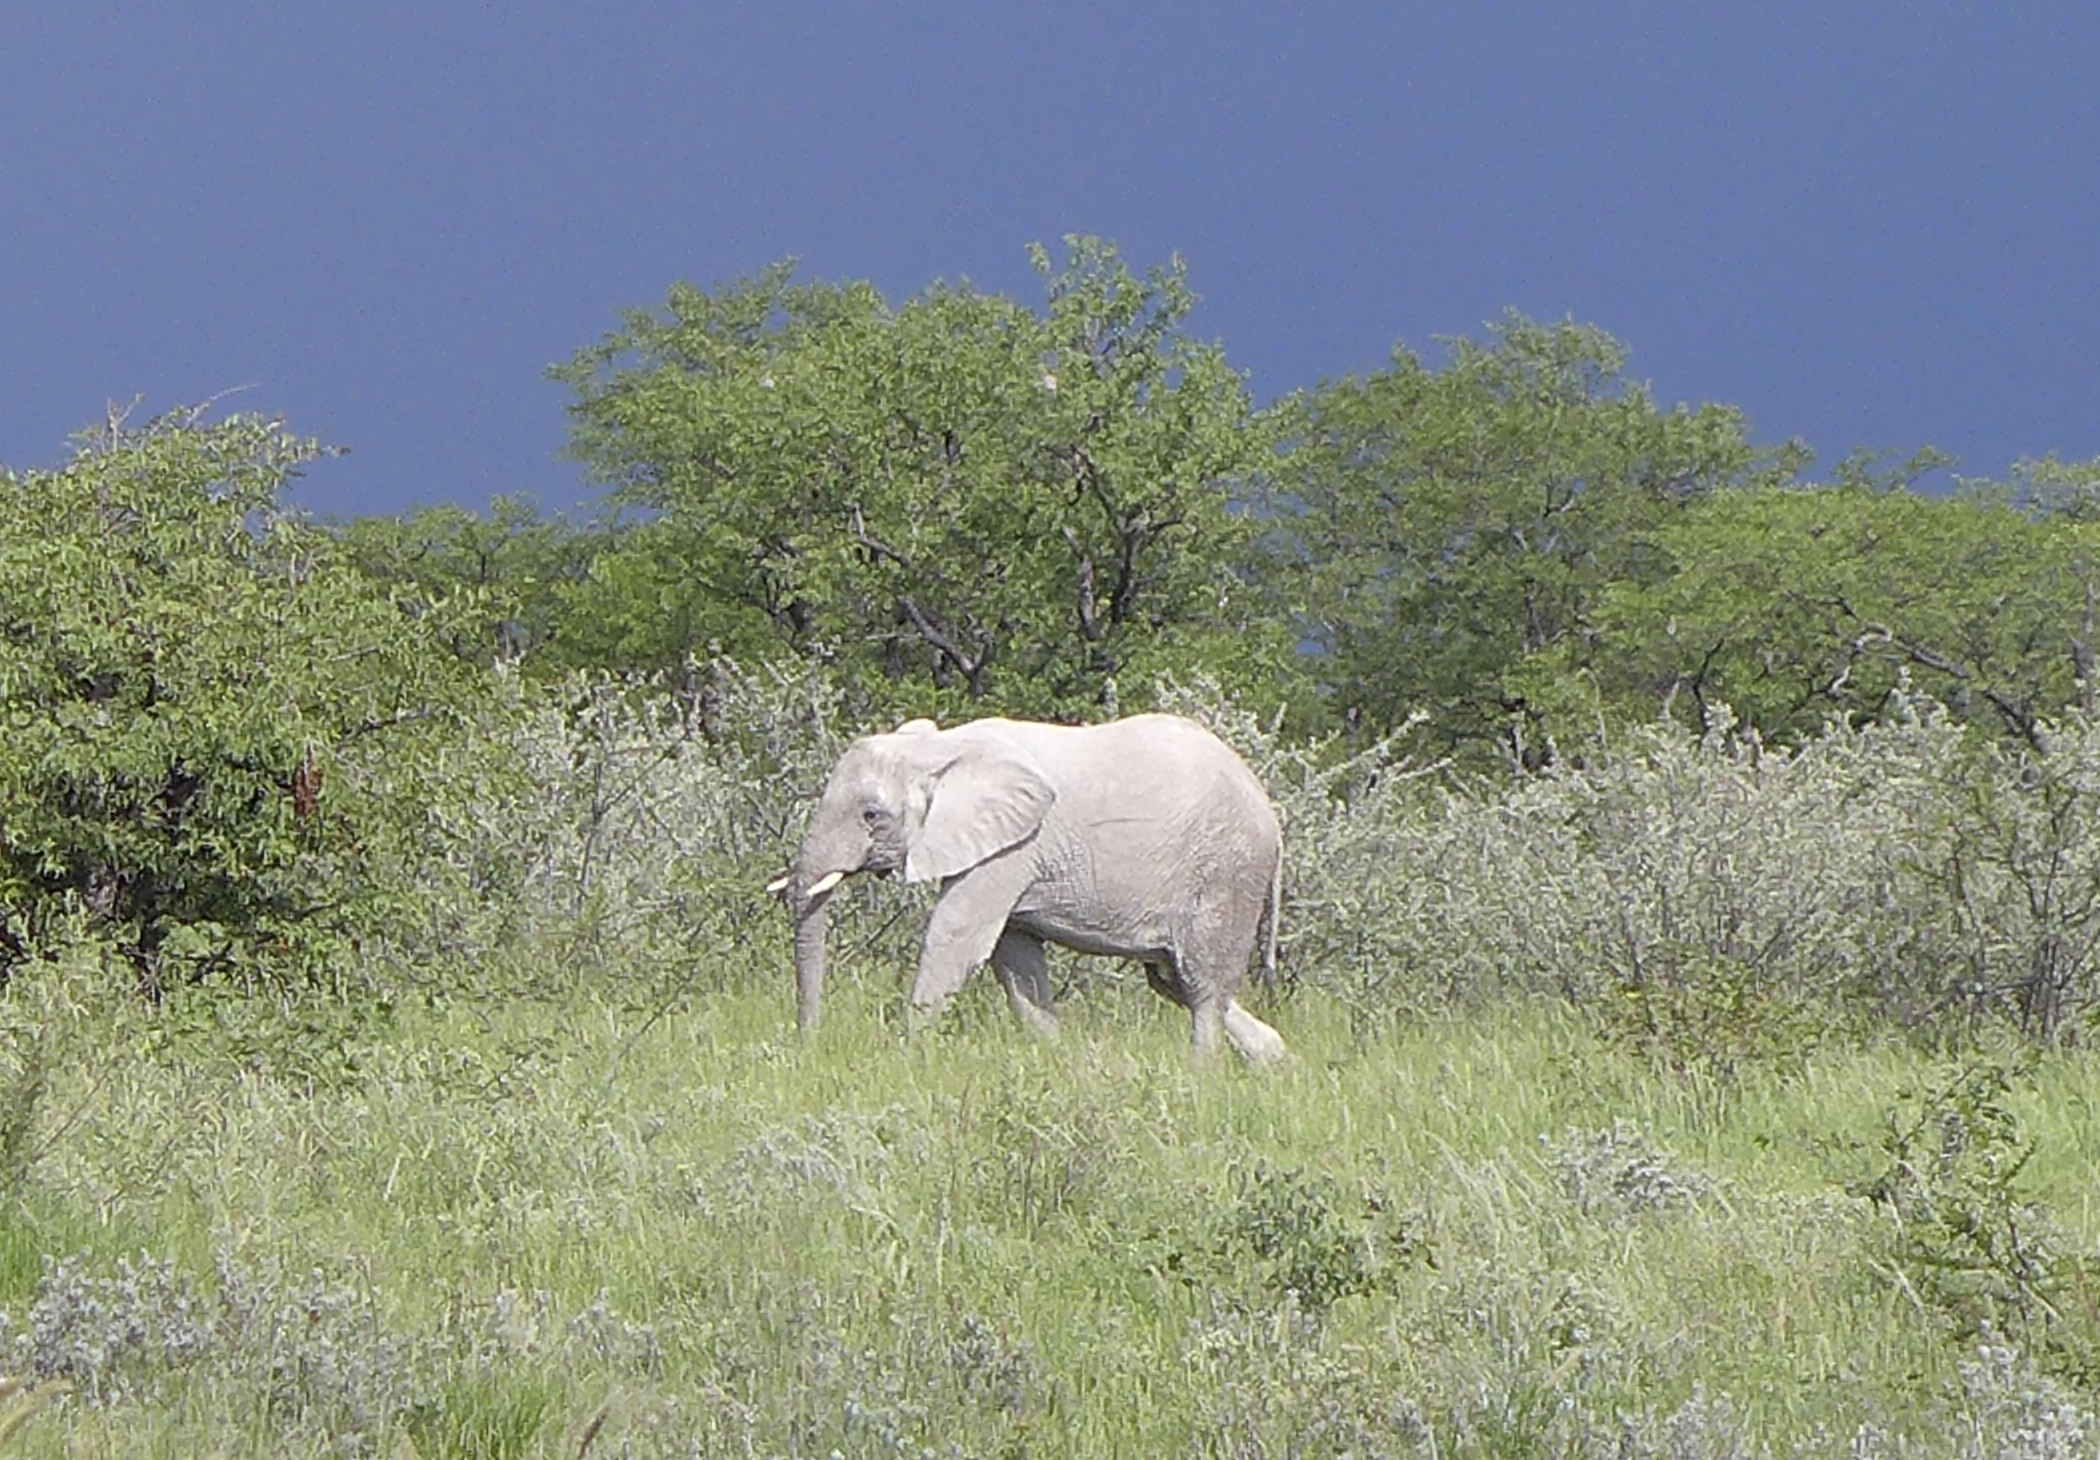 Silver elephant in the green brush with a stormy sky